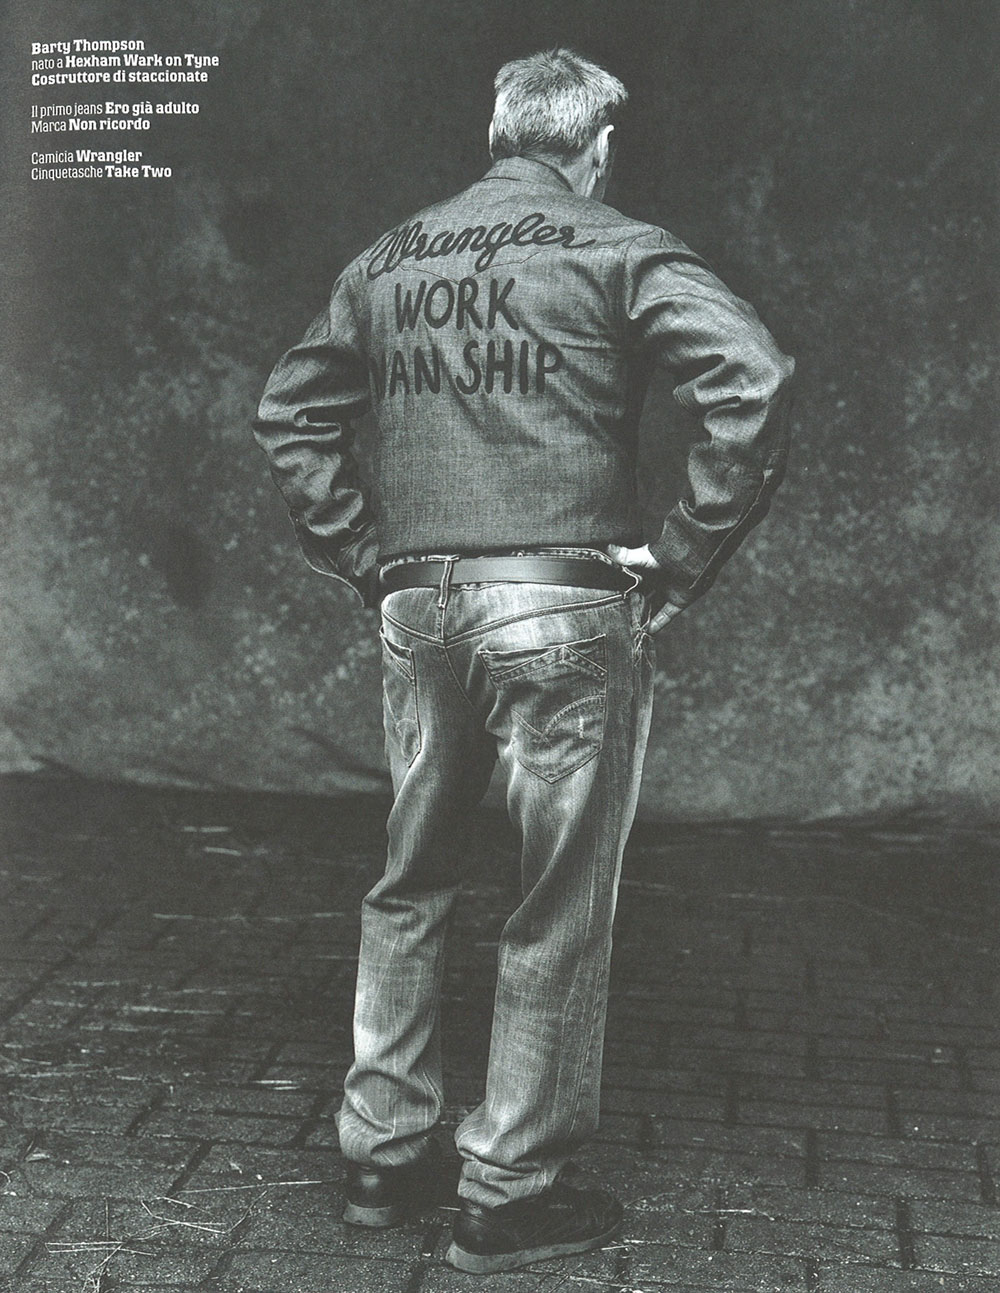 Max - Il libro del denim, 2008, Ph. Michael Woolley, Styling Filippo L.M. Biraghi